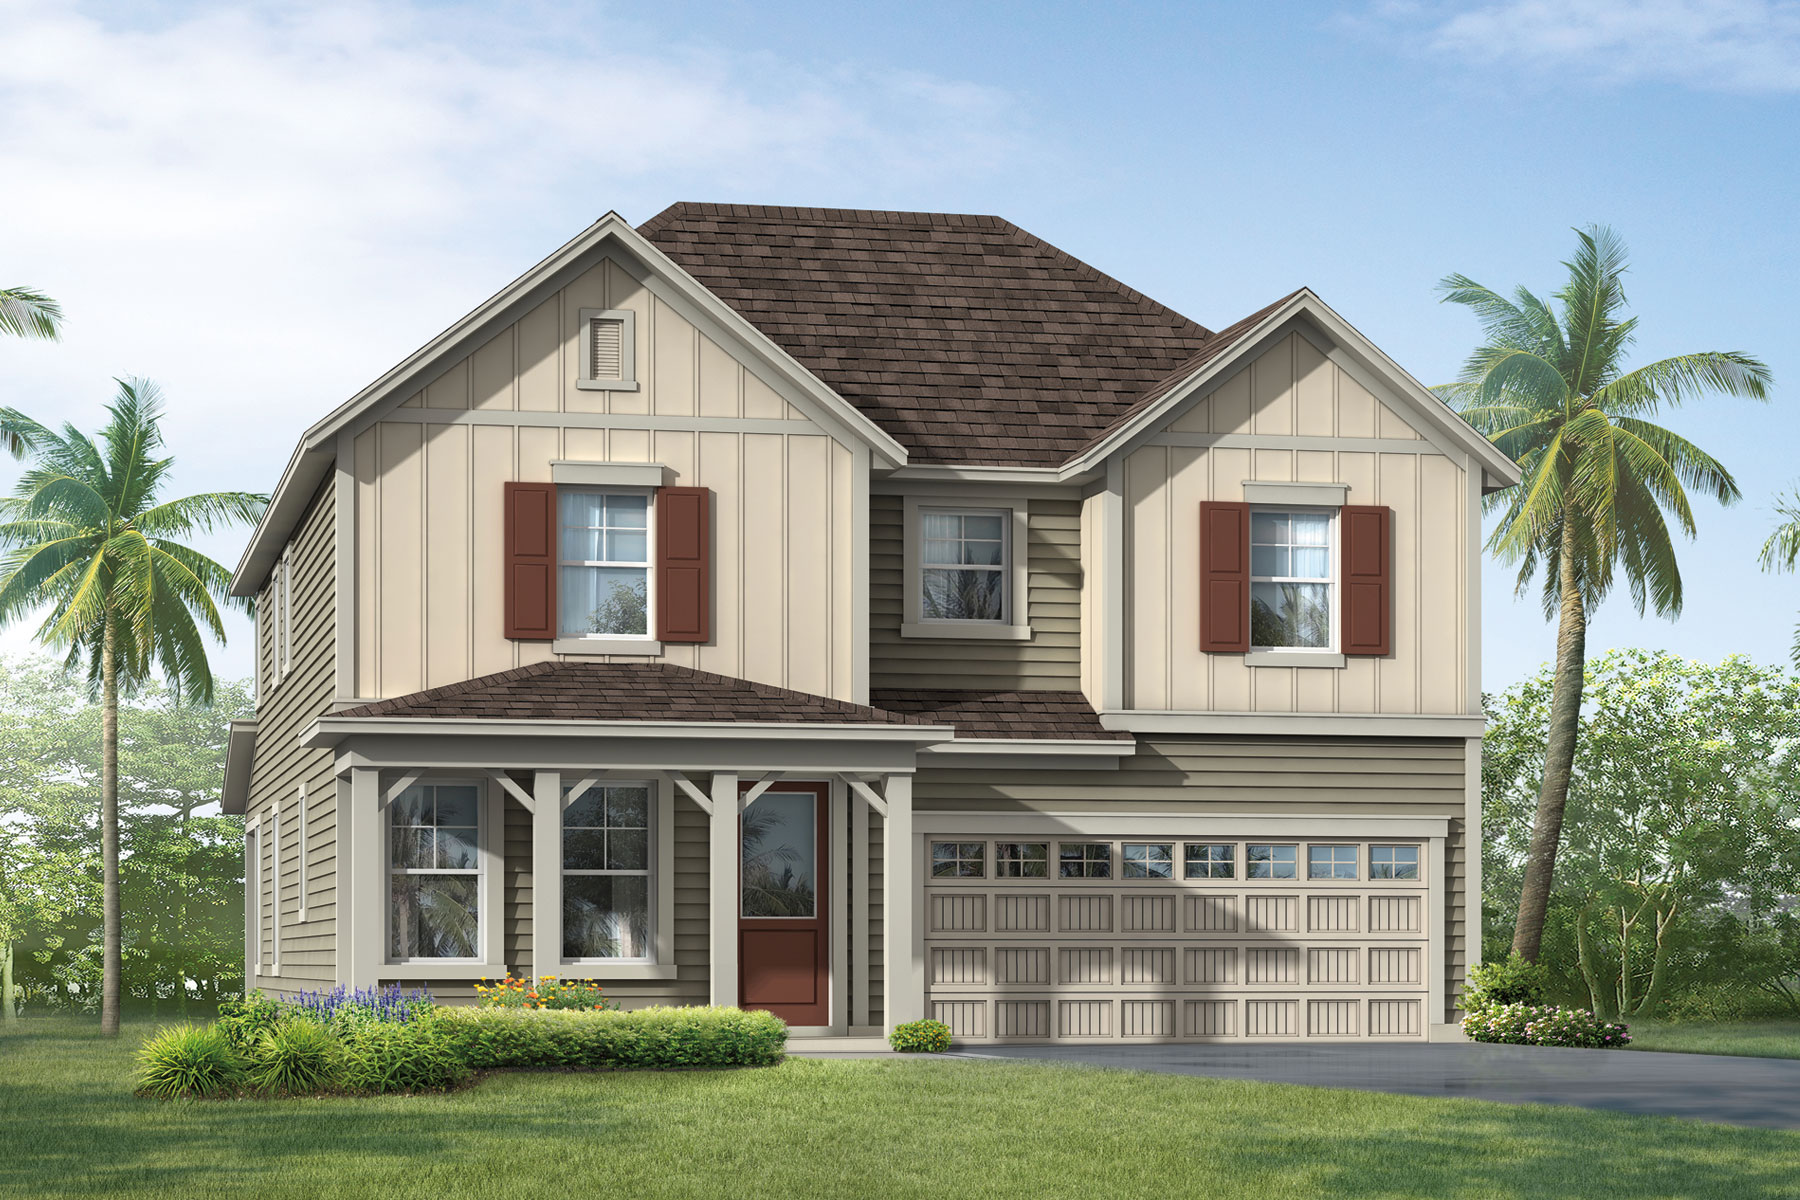 Vireo Plan Elevation Front at RiverTown - Arbors in St. Johns Florida by Mattamy Homes